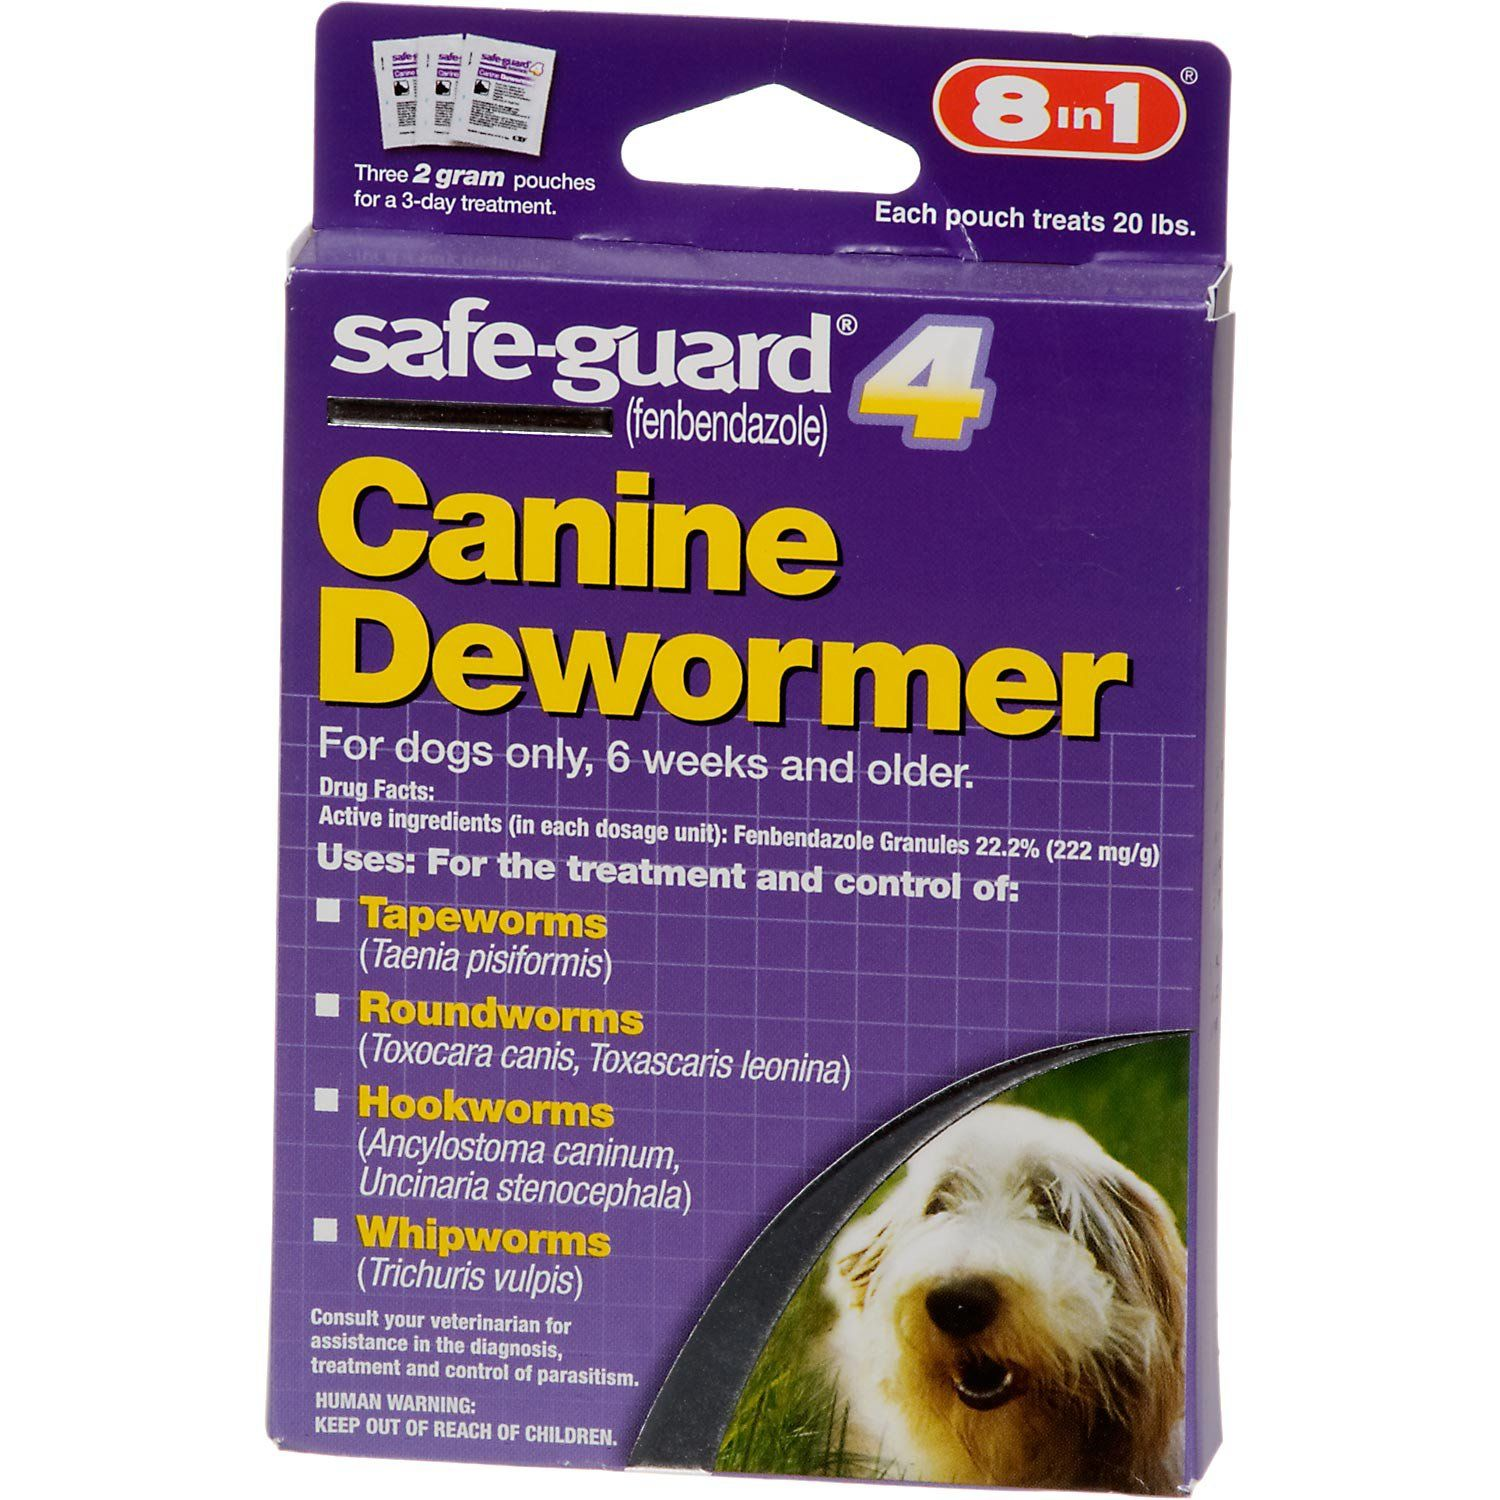 8 In 1 Safe Guard 4 Canine Dewormer For Medium Dogs Pet Grooming